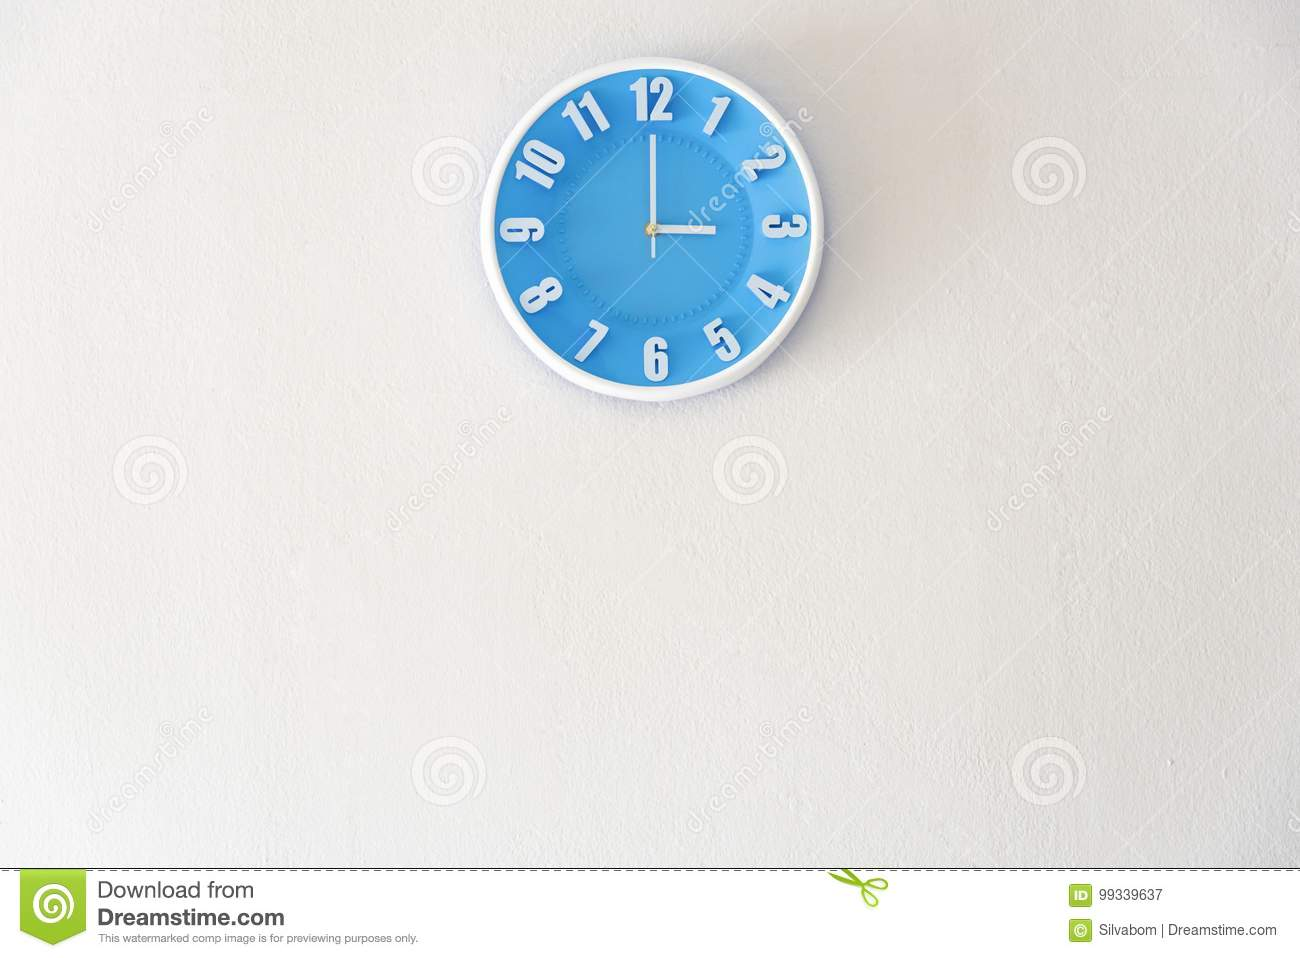 Good afternoon or after midnight with 3:00 clock on white concrete wall interior background with copy space, message board